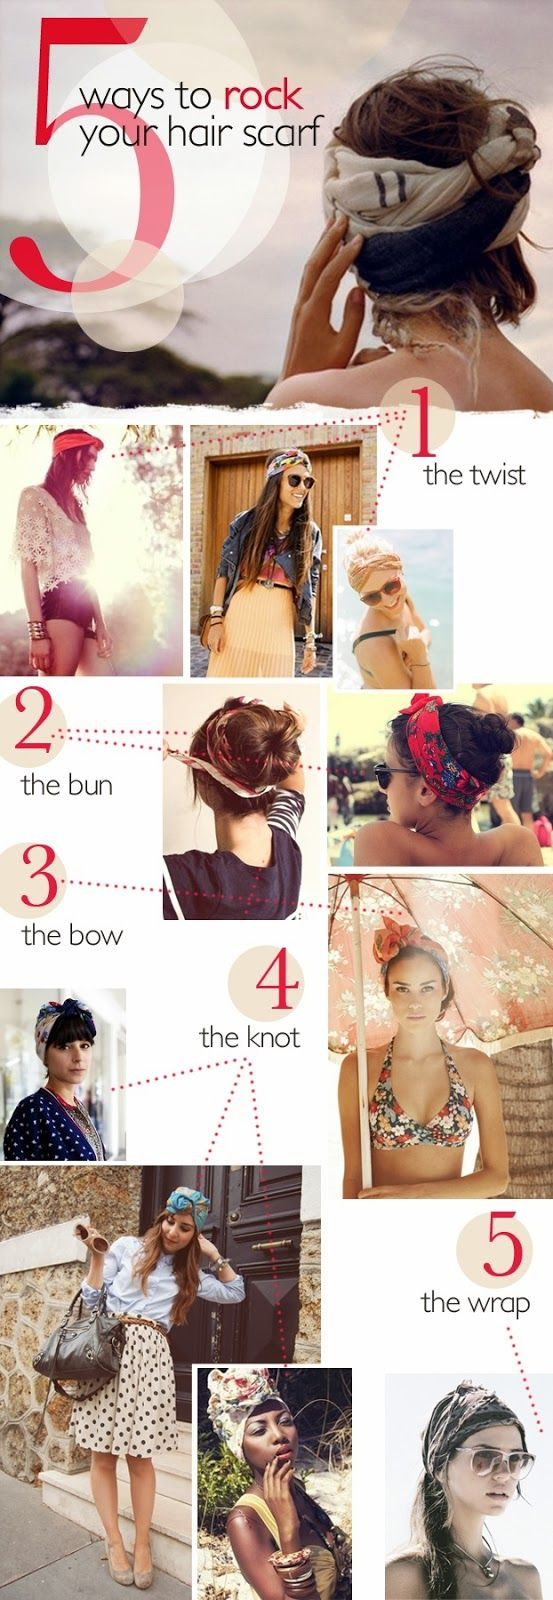 5 easy ways to rock your hair scarf | Fashion and styles